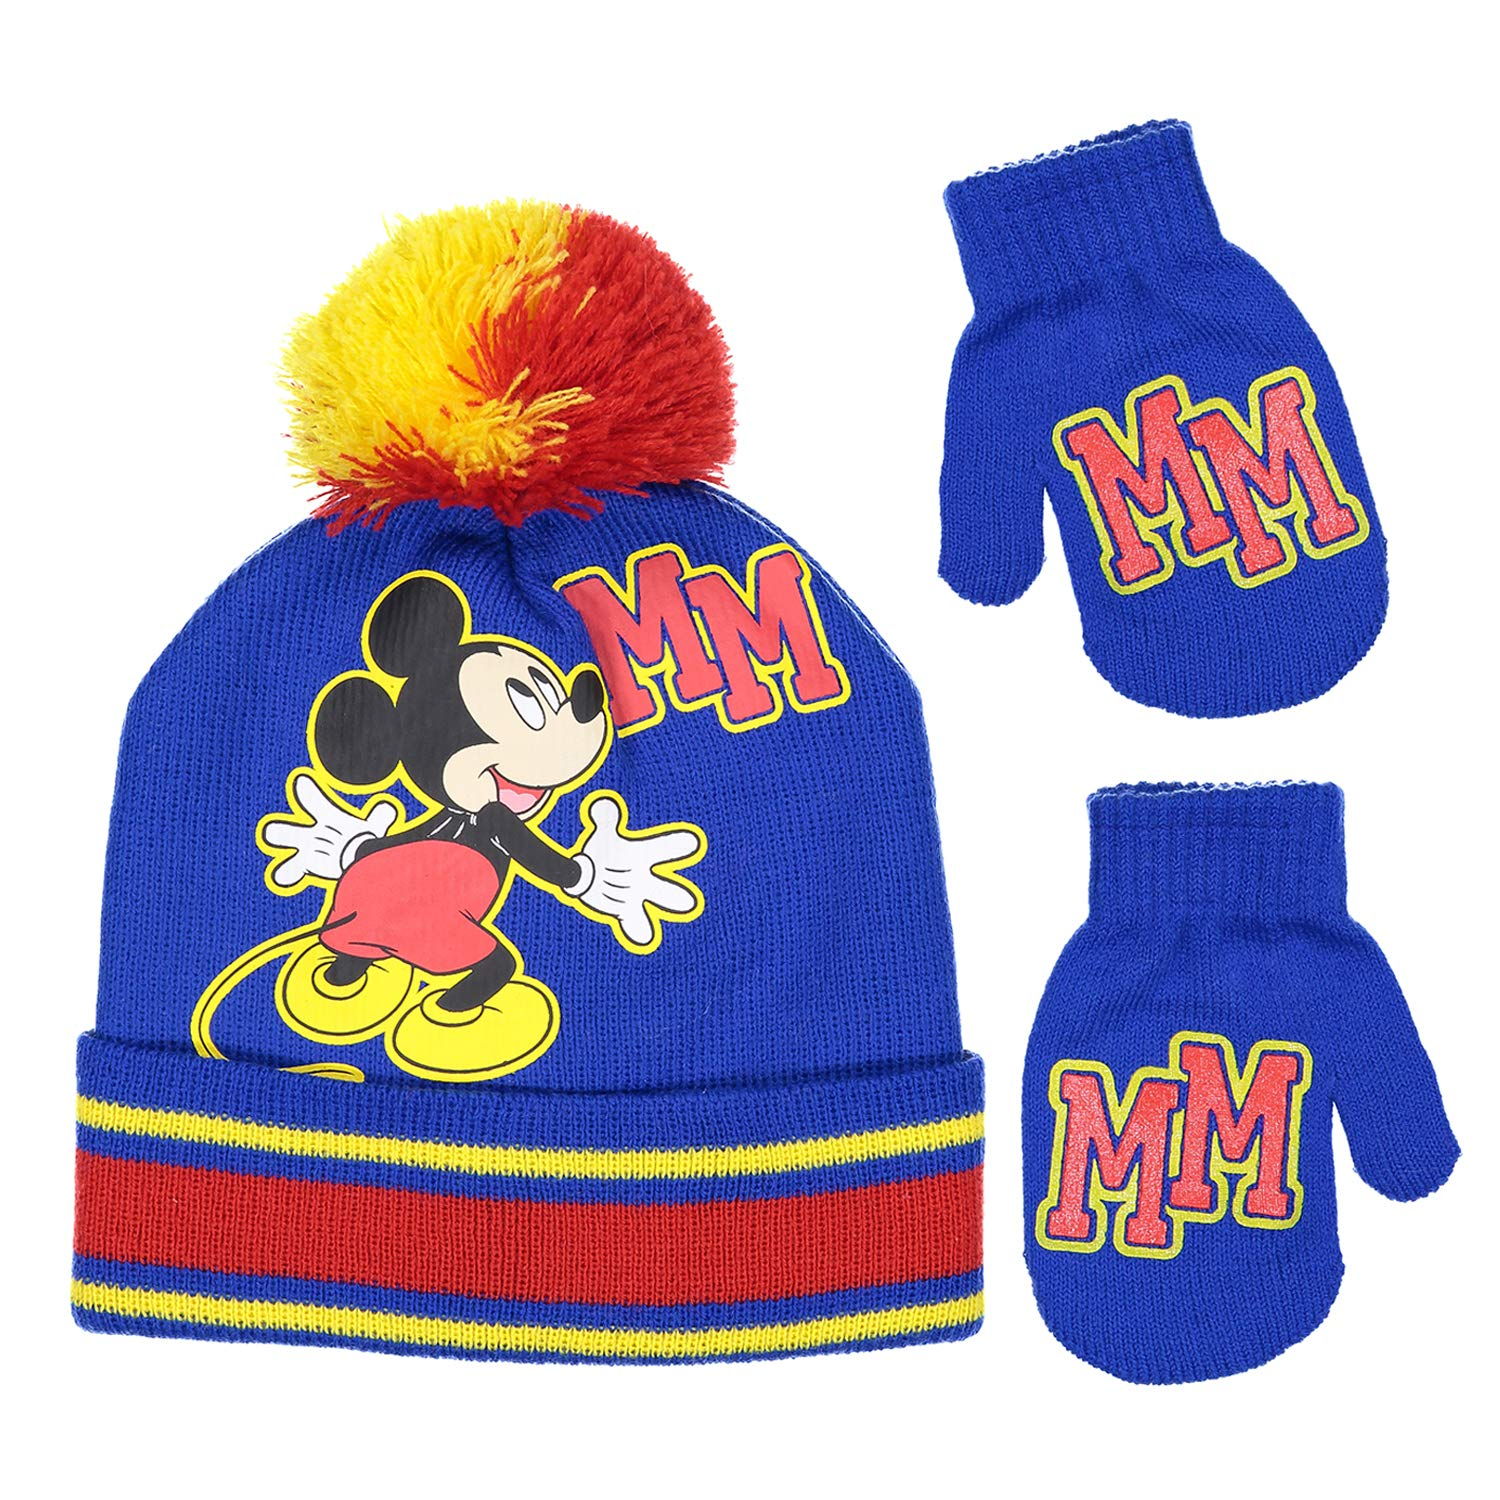 Disney Mickey Mouse Boys Beanie Knit Winter Hat And Mitten Set - Toddler Size [4015]